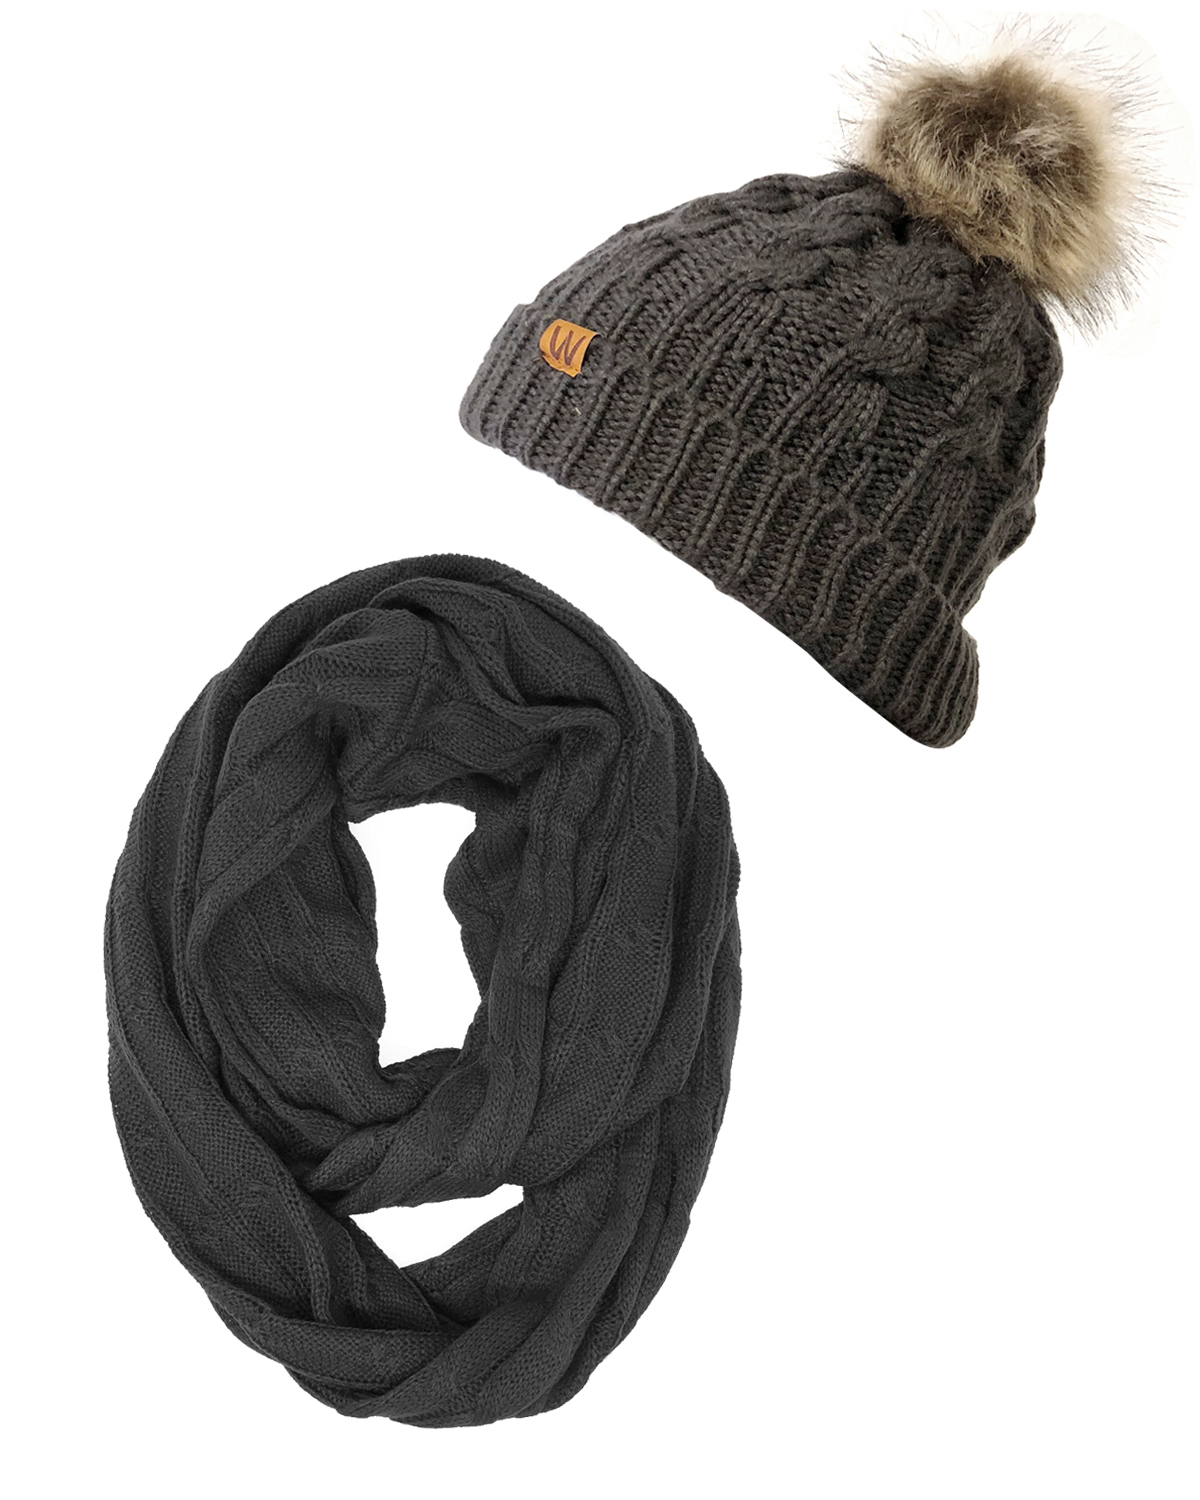 90fb205852734 Wrapables® Winter Warm Cable Knit Infinity Scarf and Faux Fur Pom Pom Beanie  Set, Charcoal Gray - Walmart.com